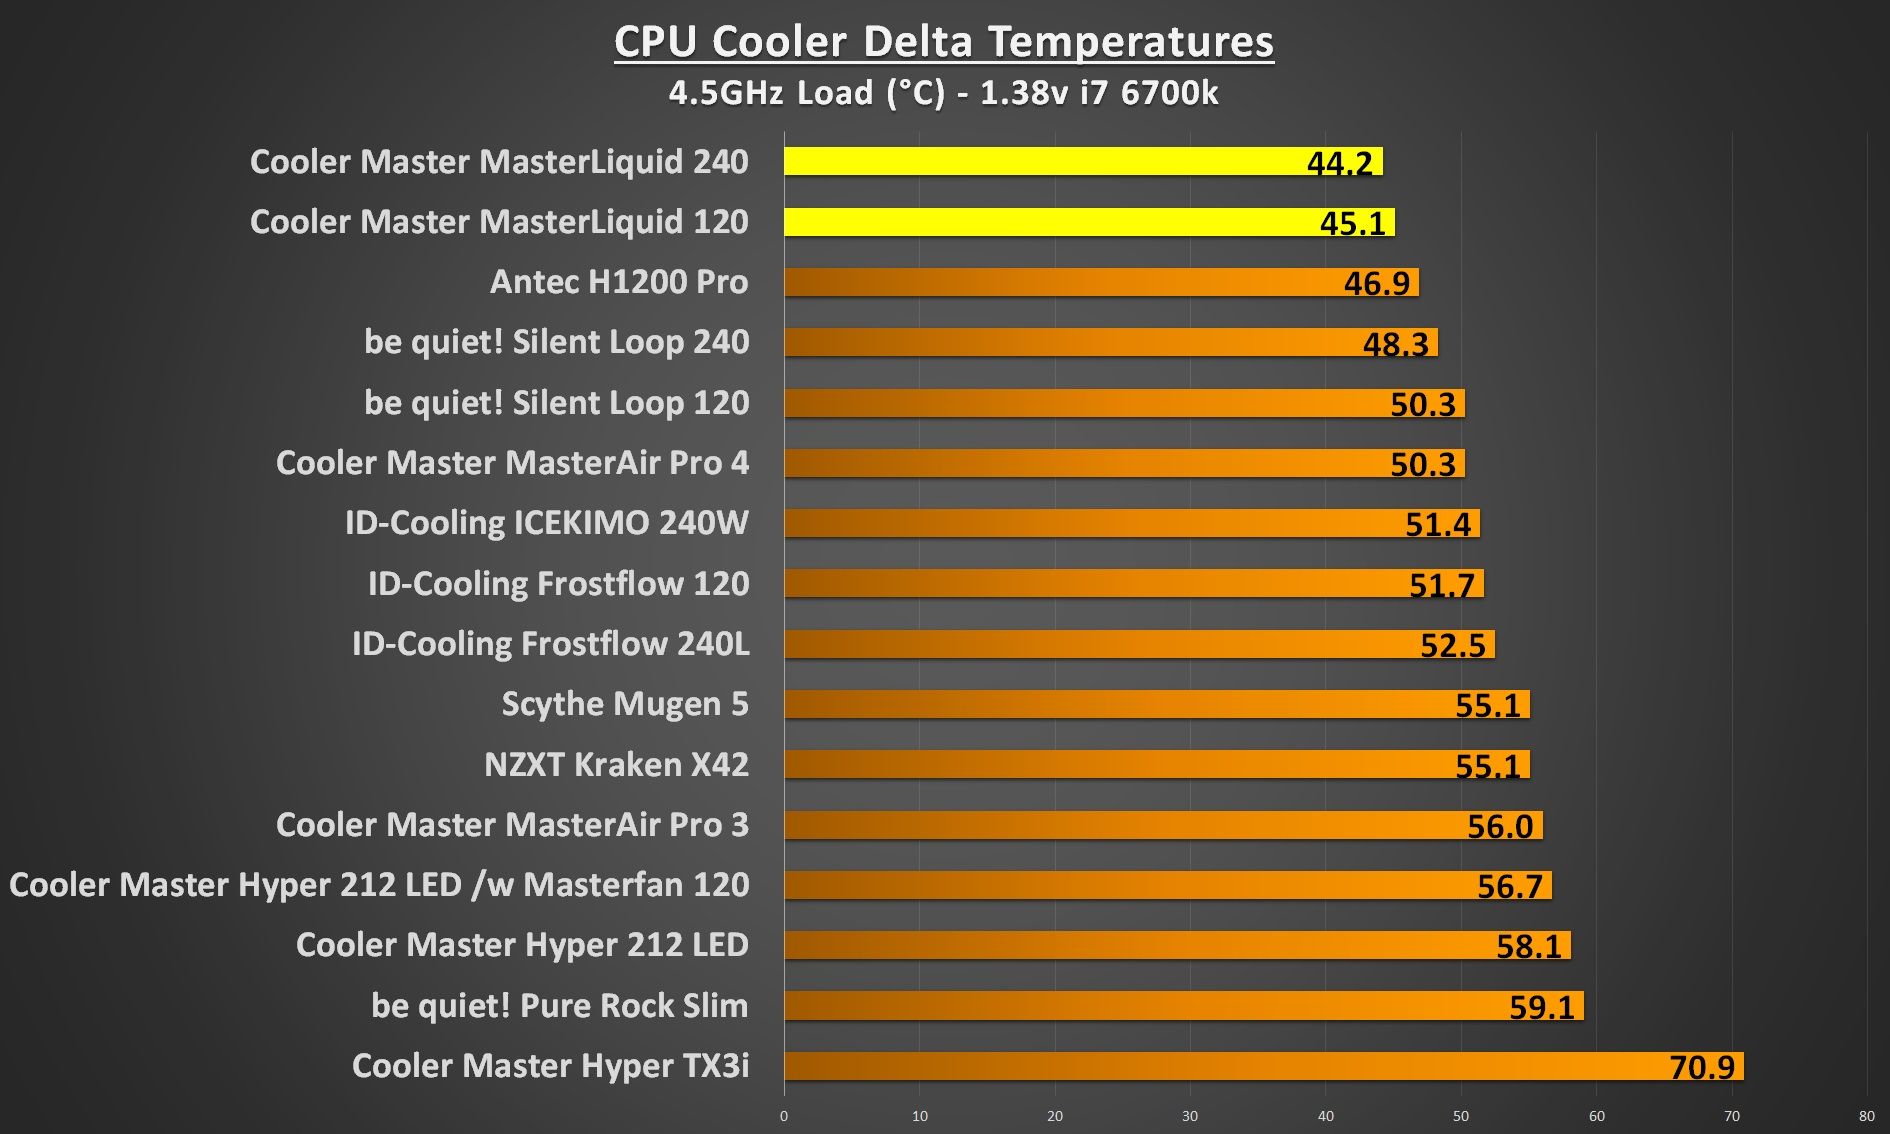 cooler master masterliquid 4.5Ghz load